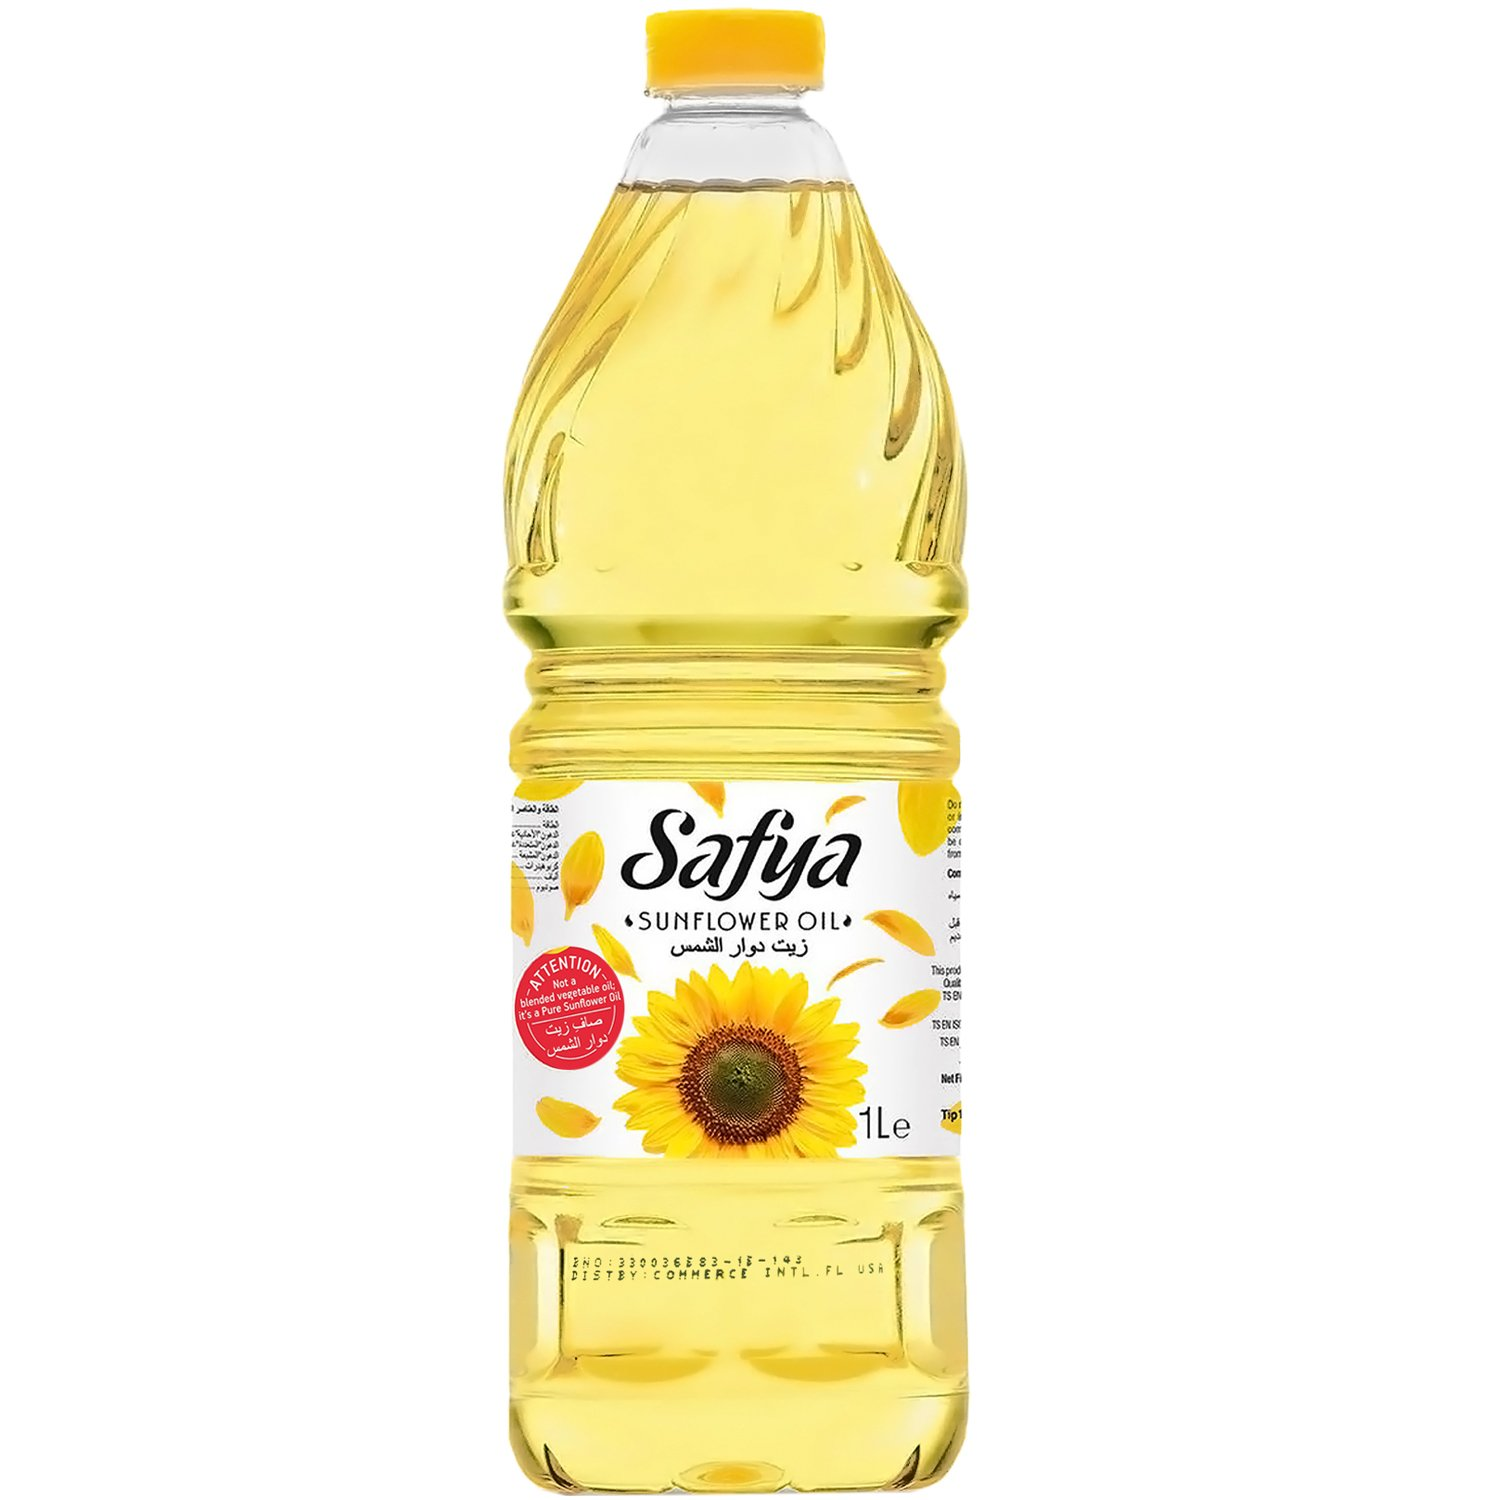 Amazon.com : Safya - 100% Pure Sunflower Oil, 1 L (33.8 fl oz ...